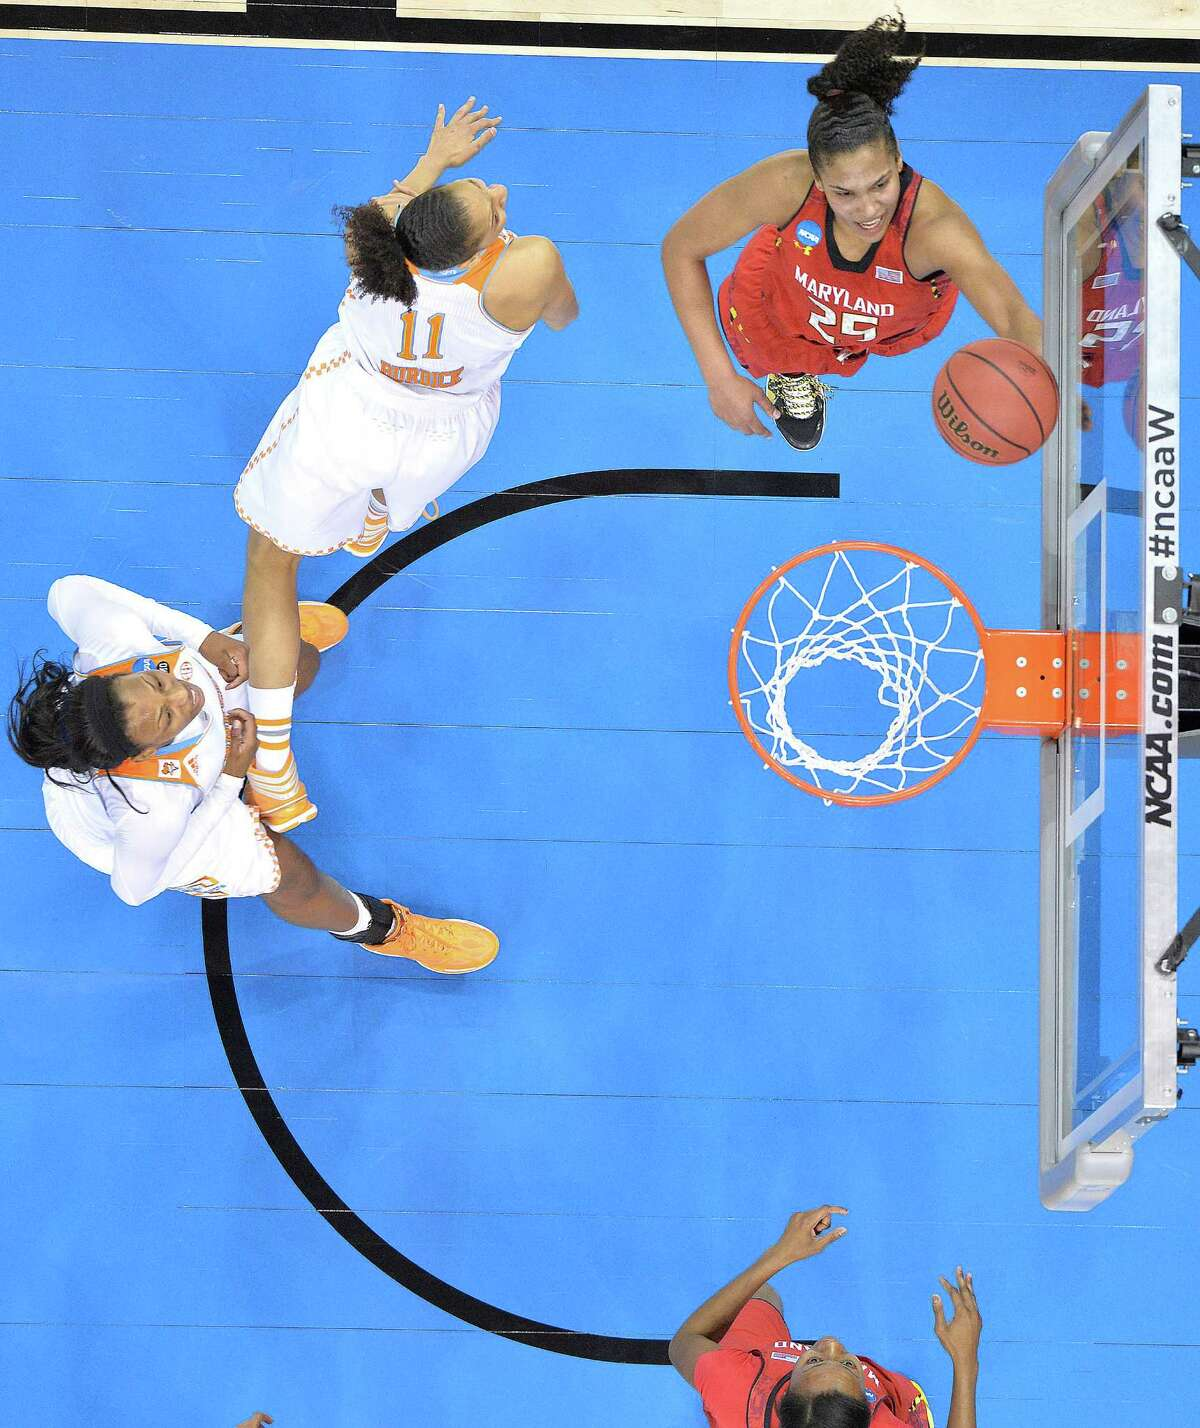 Maryland's Alyssa Thomas, top right, shoots past the defense of Tennessee's Cierra Burdick during the second half in a regional semifinal game at the NCAA women's college basketball tournament on Sunday, March 30, 2014, in Louisville, Ky. Maryland defeated Tennessee 73-62. (AP Photo/Timothy D. Easley) ORG XMIT: KYTE105